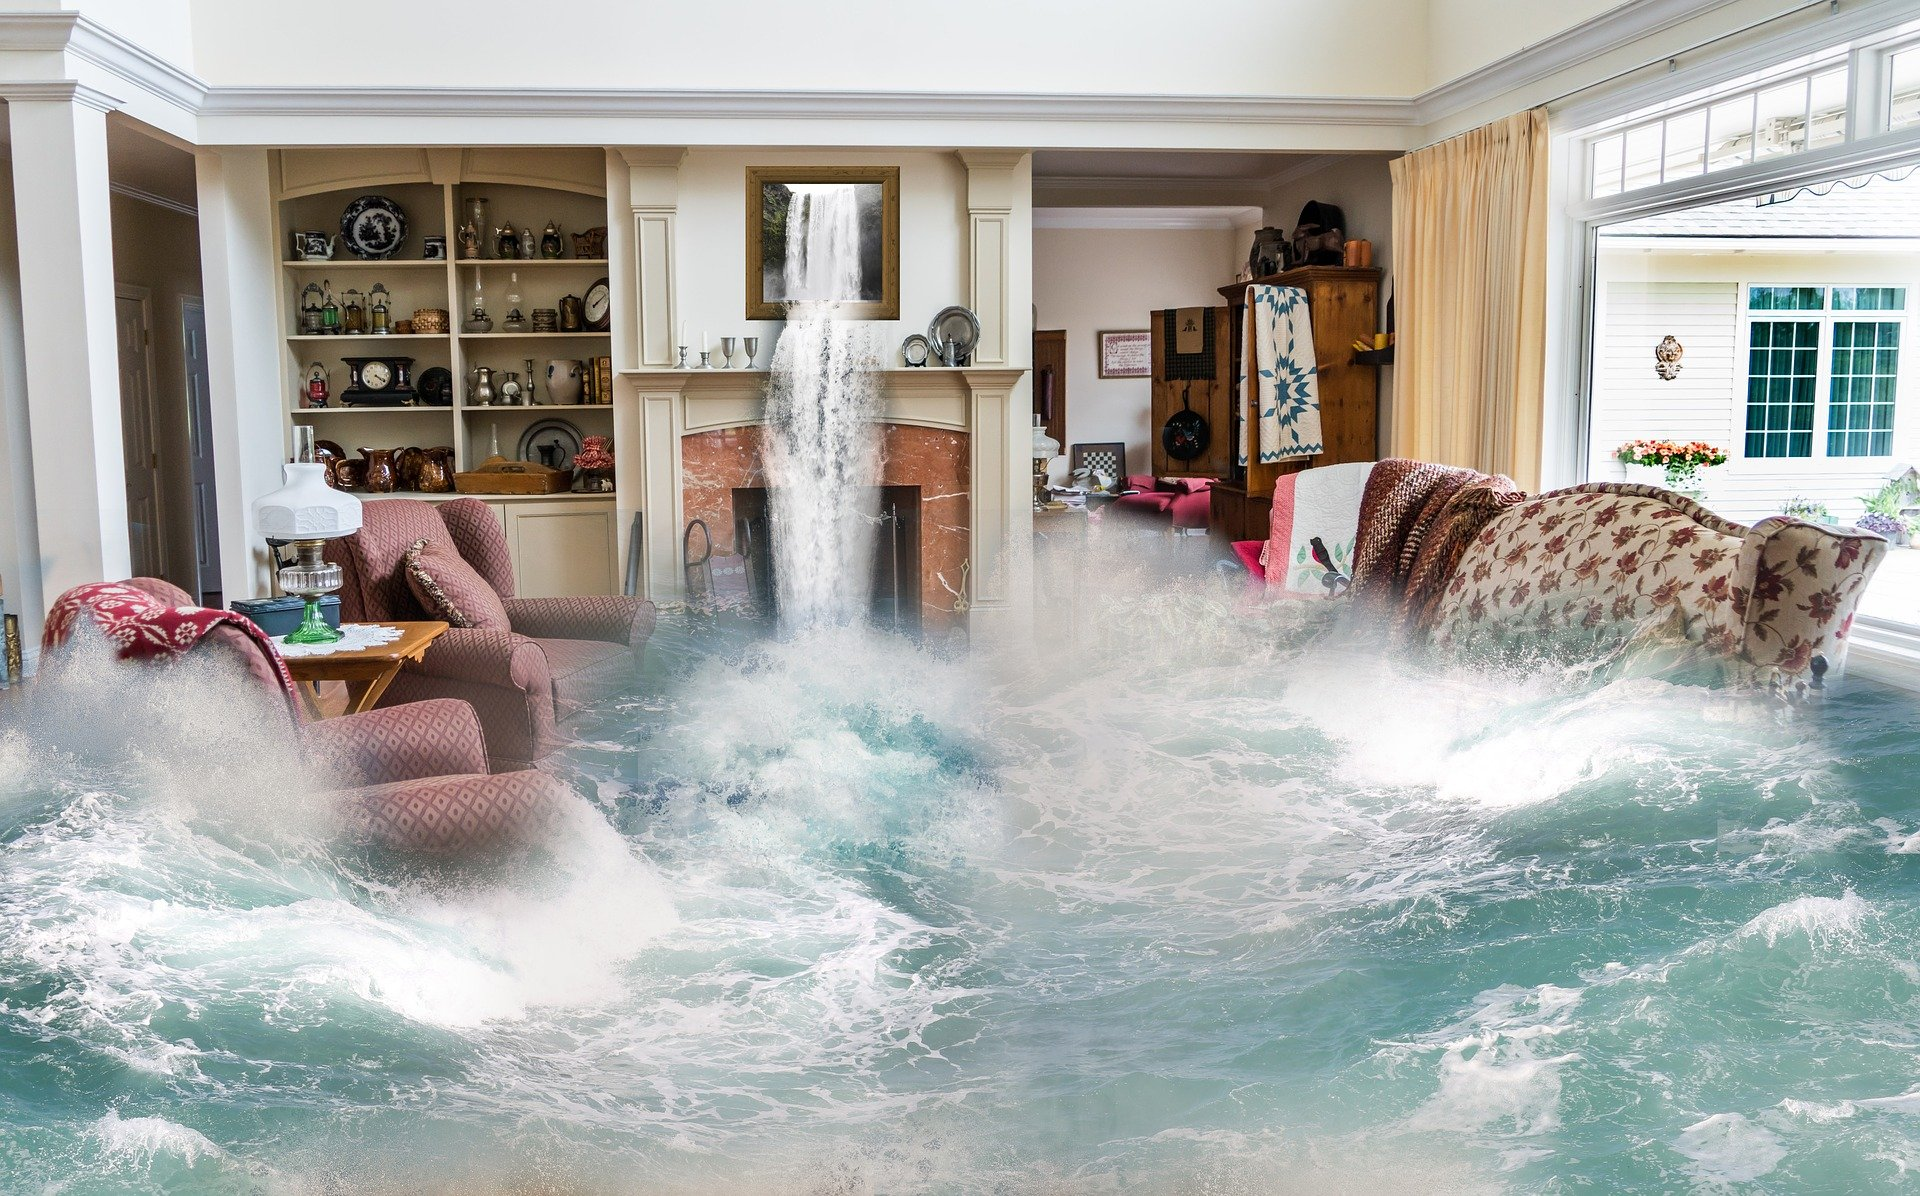 Flood Insurance: Why It's a Non-negotiable For KBT Homebuyers